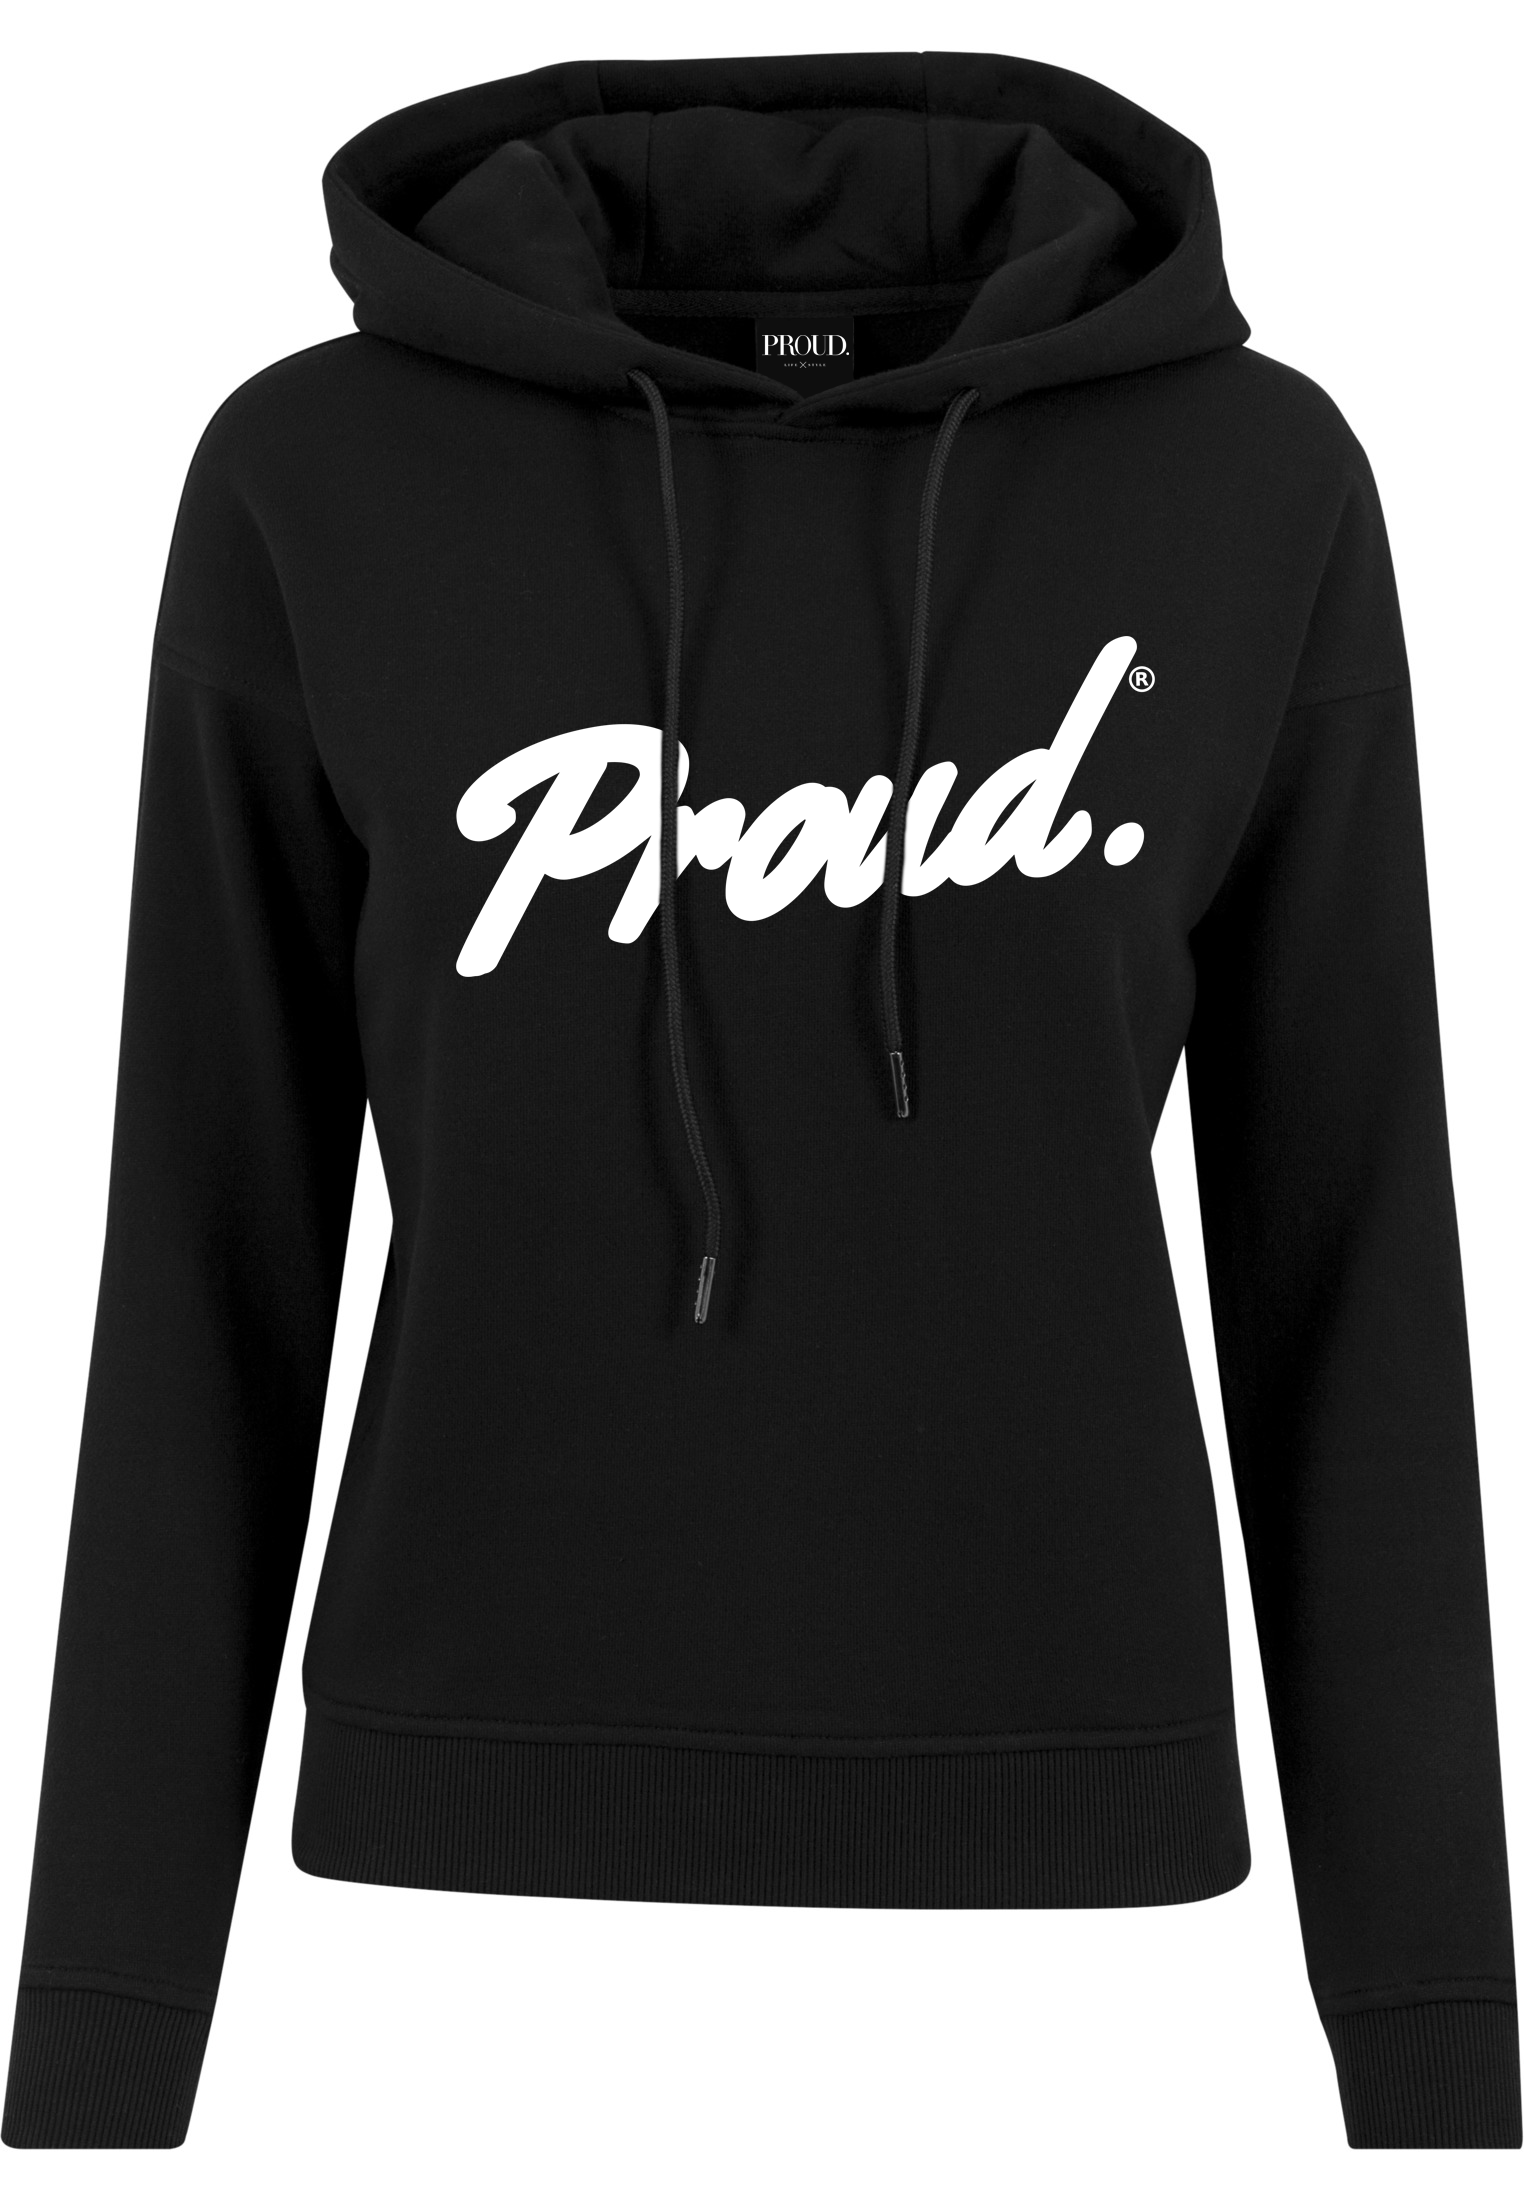 Trui Met Capuchon Dames.Proud Script Logo Dames Hooded Sweater Black Proud